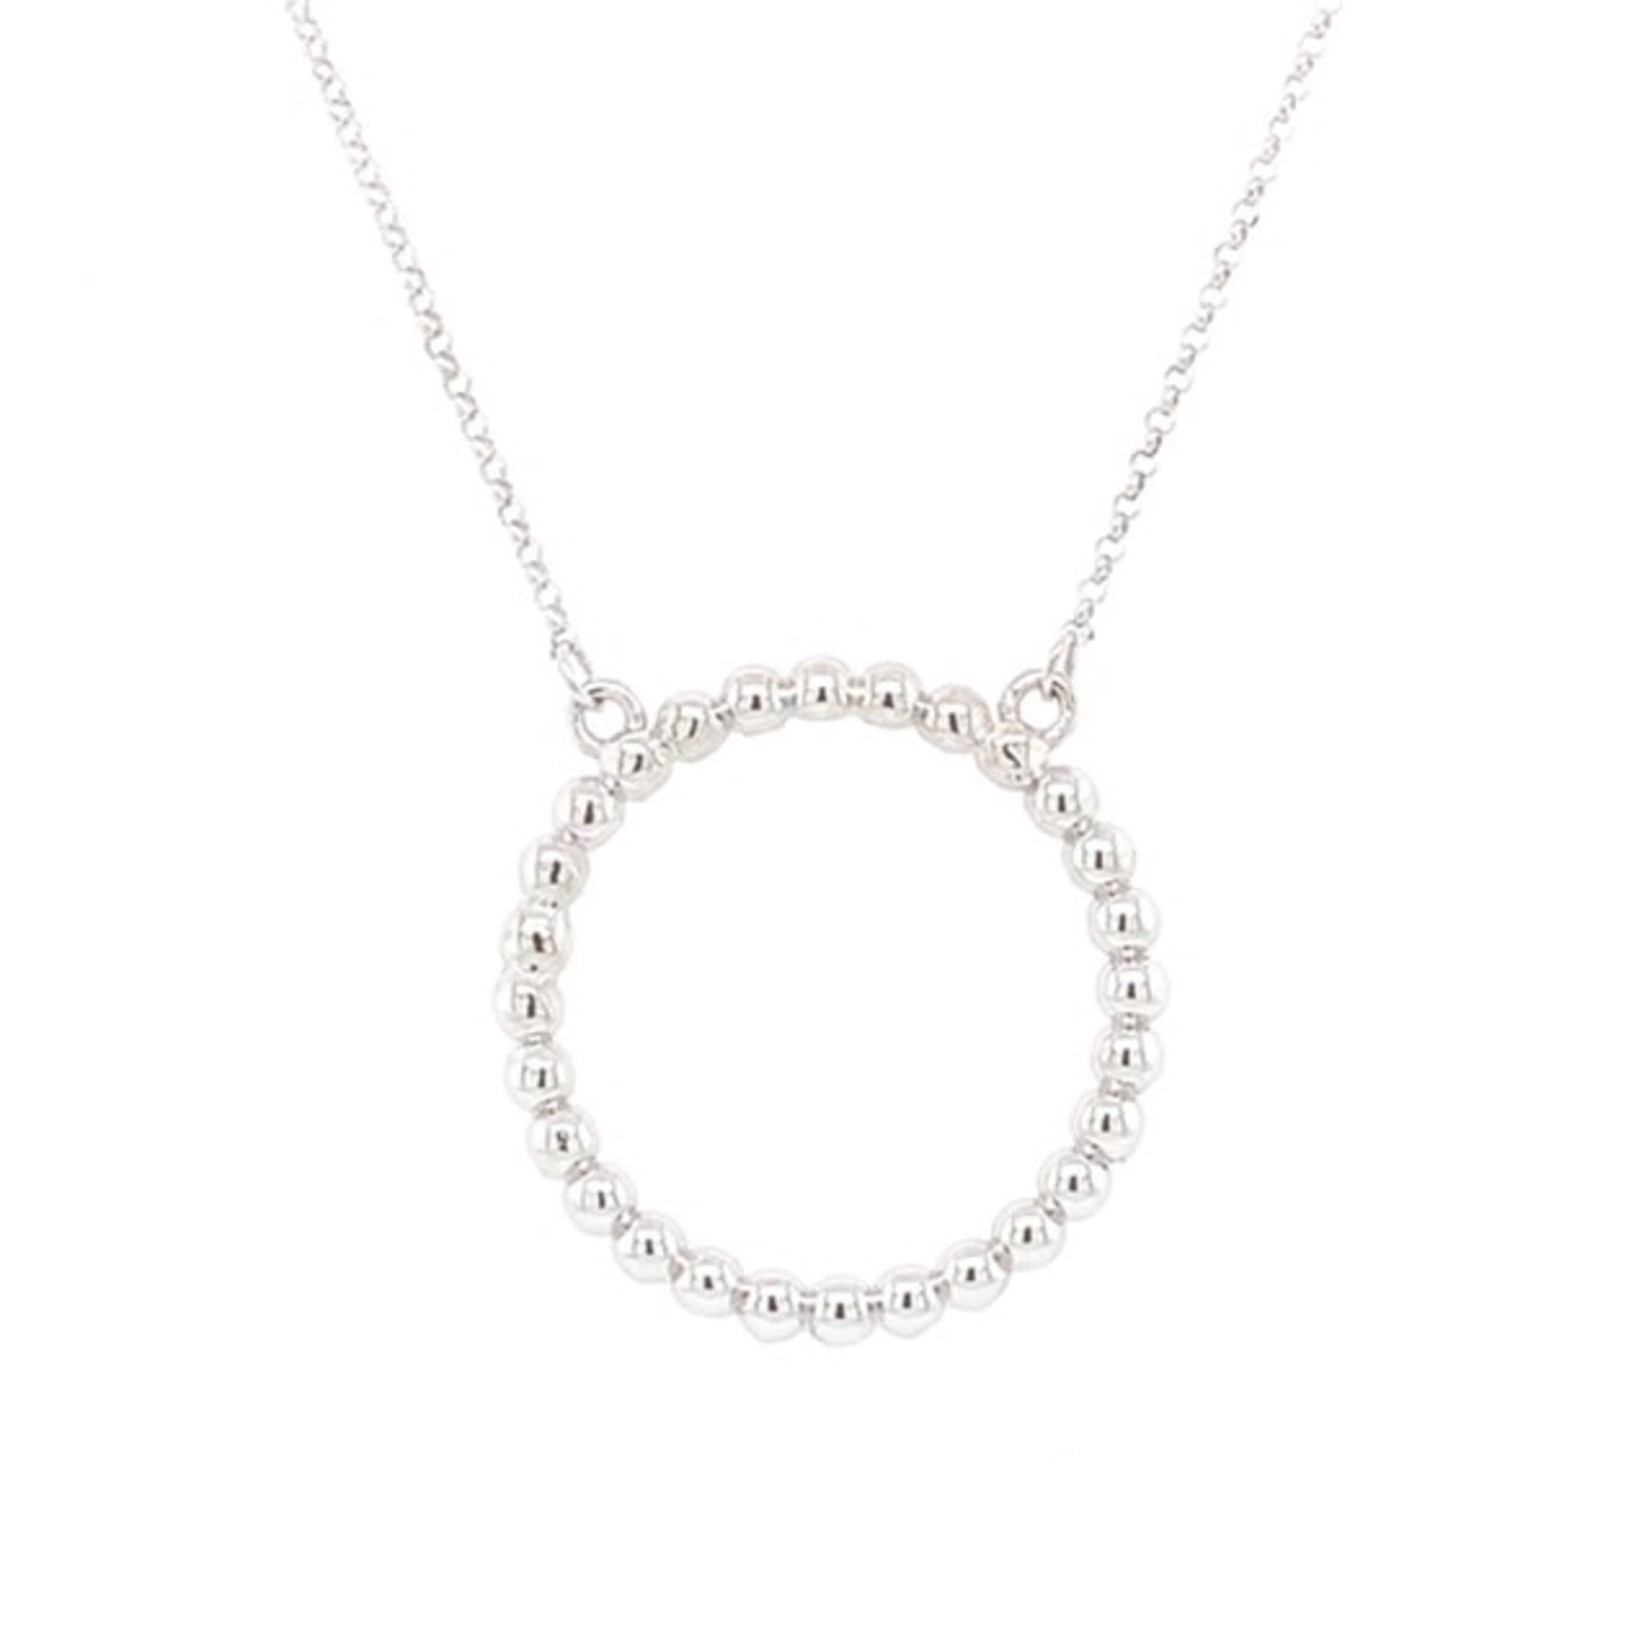 On The Edge Bumpy Road Necklace 14kt White Gold